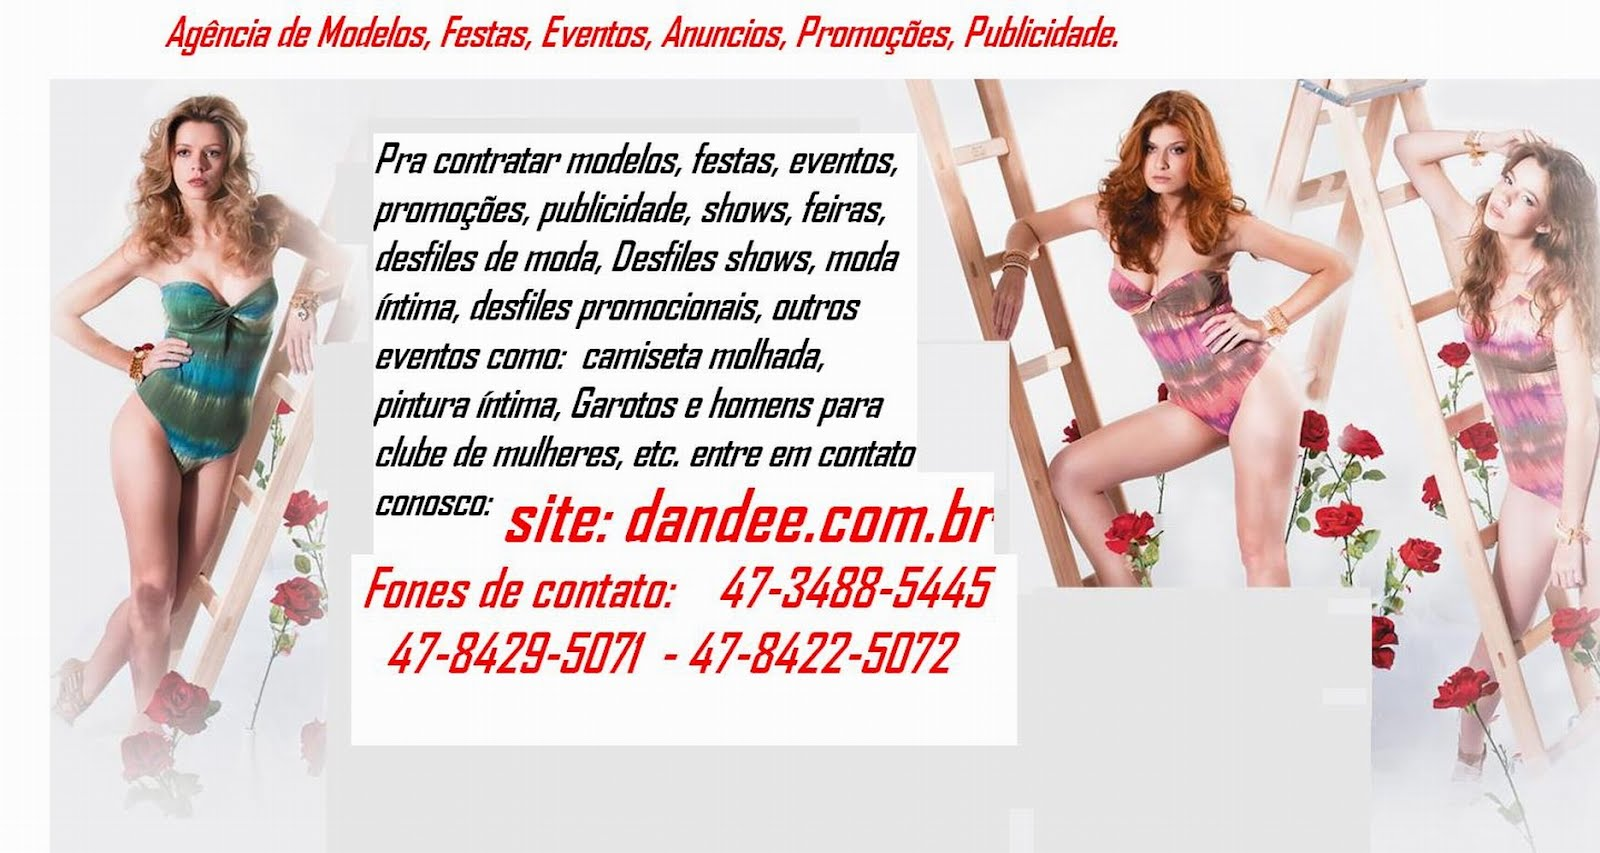 ESCORT REVIEW WEBSITE LENE ESKORTE